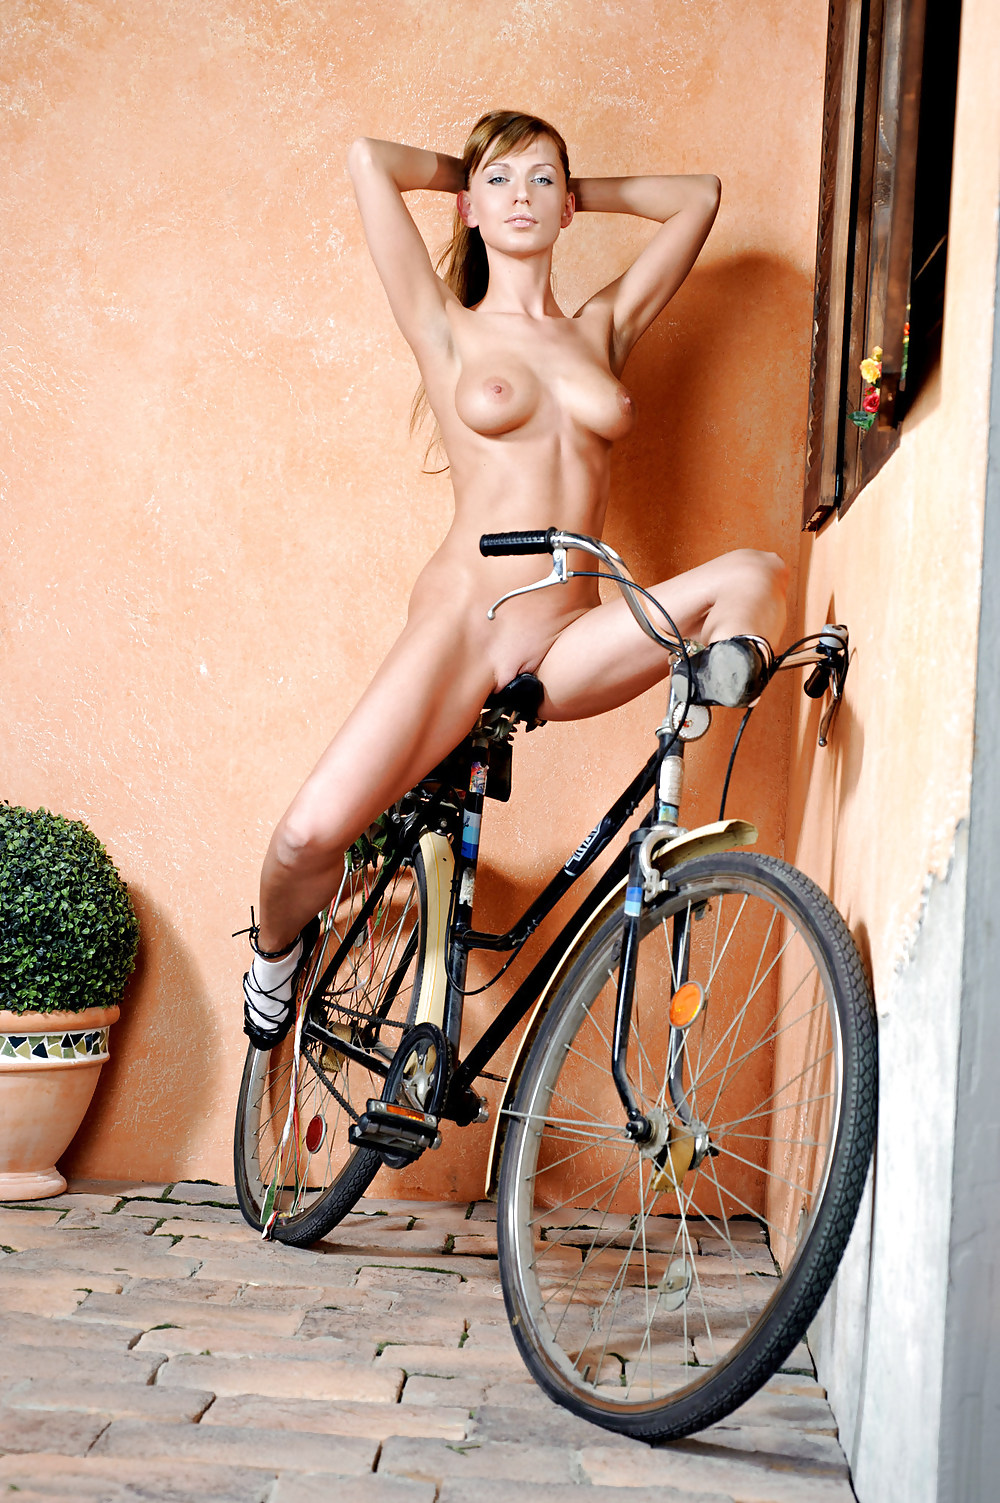 Opinion you Girls nude on bikes spread confirm. agree